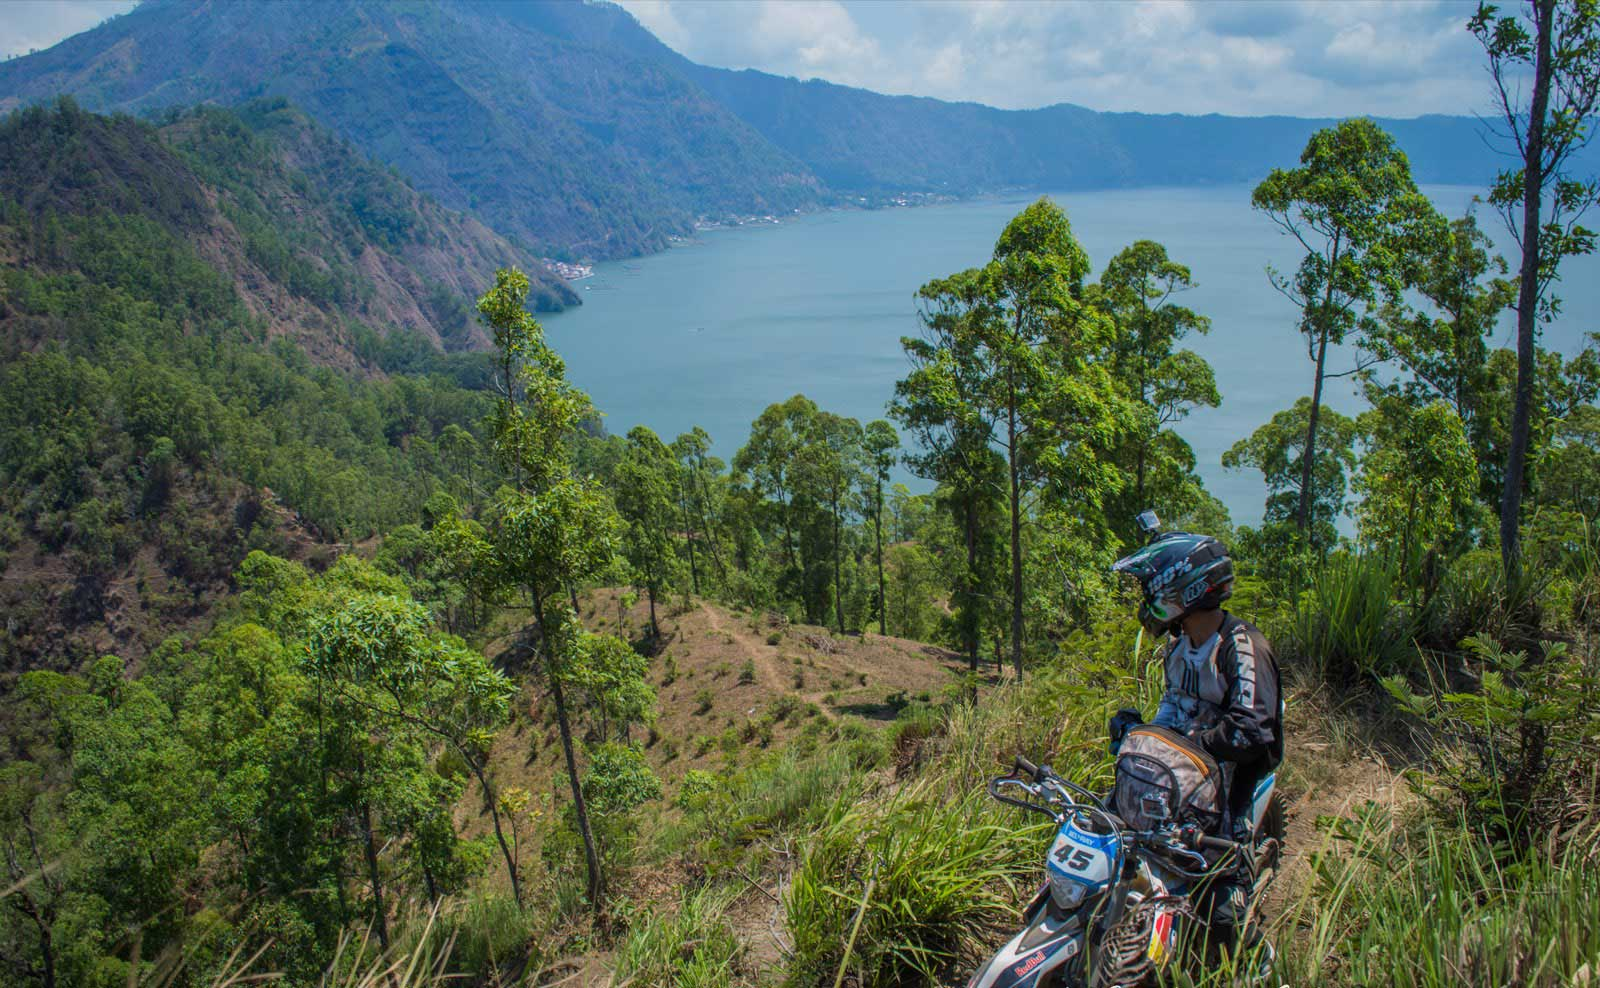 Motorcycle Adventure Tours in Bali